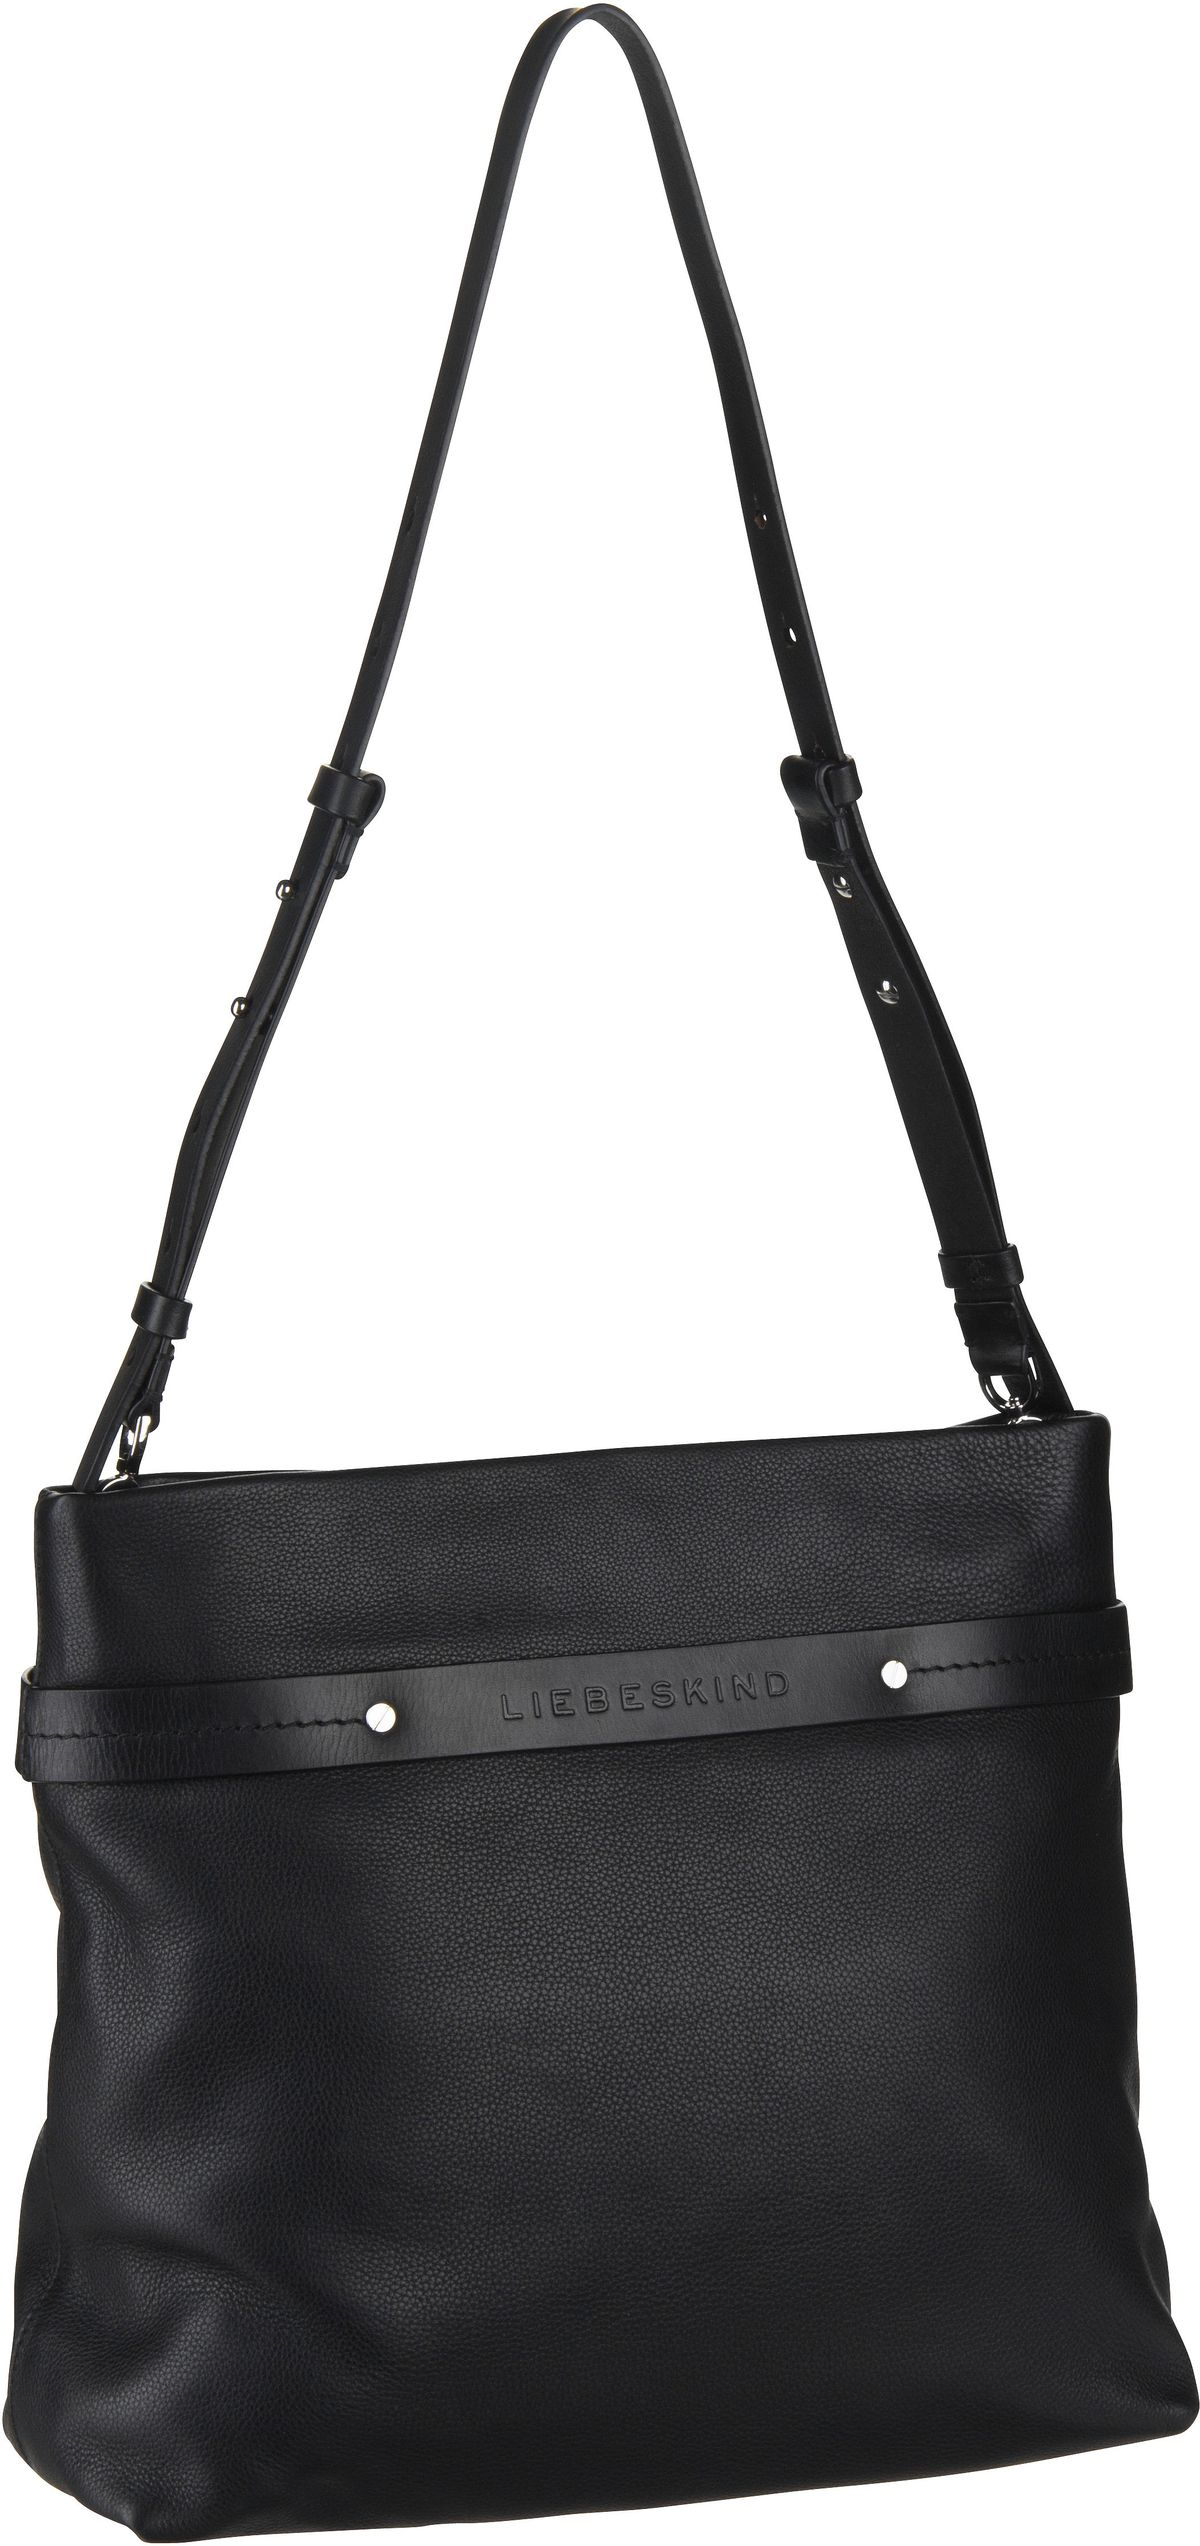 Berlin Handtasche SoShopper Hobo M Black